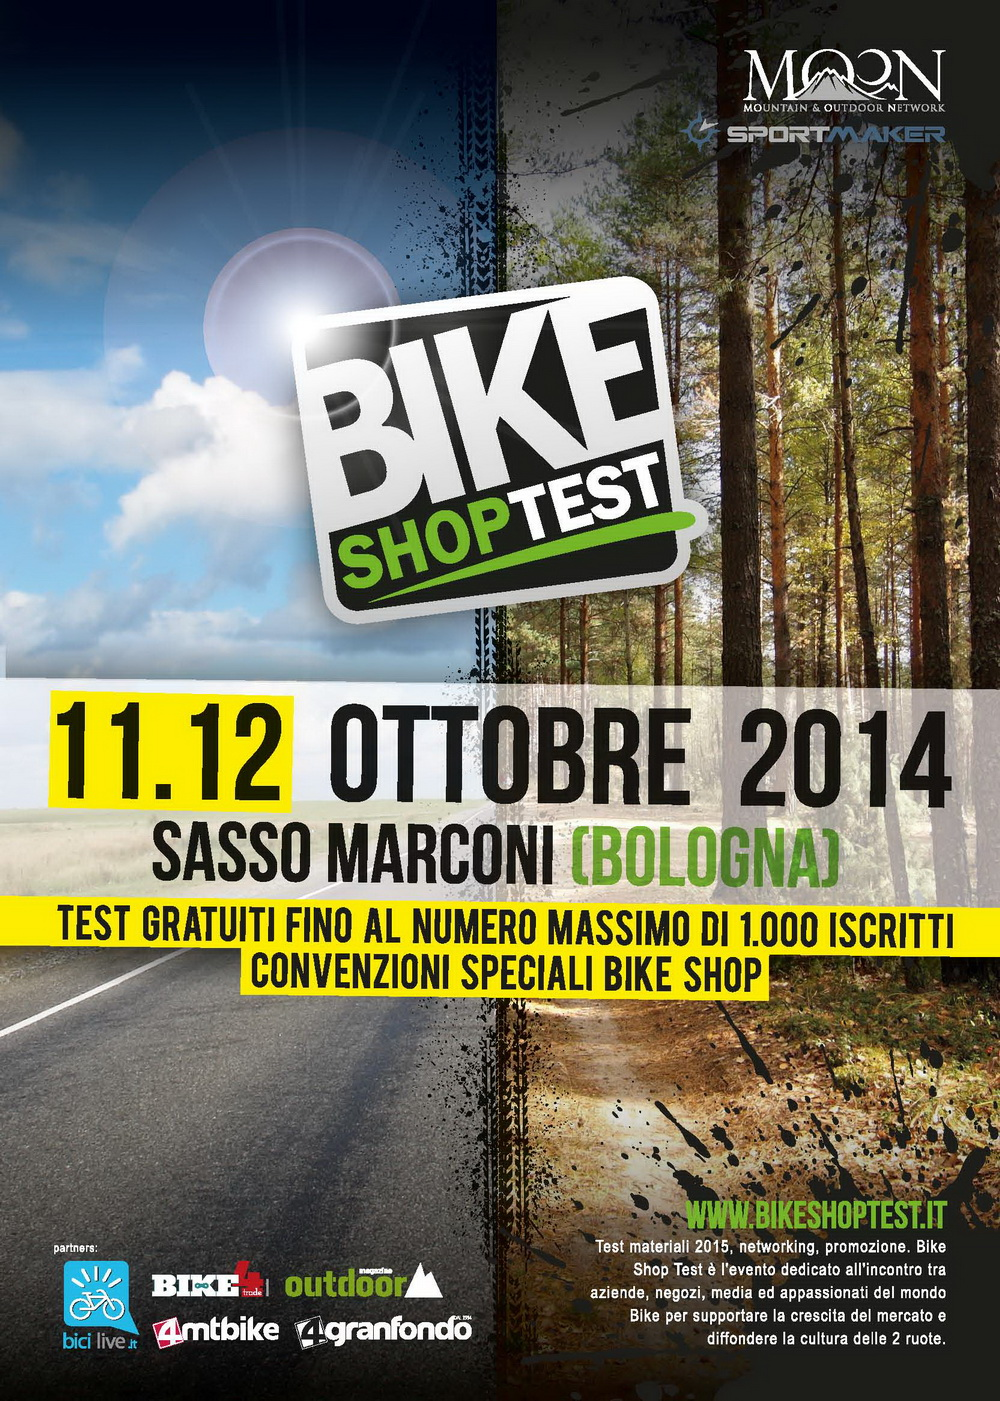 Bike Shop Test 2014